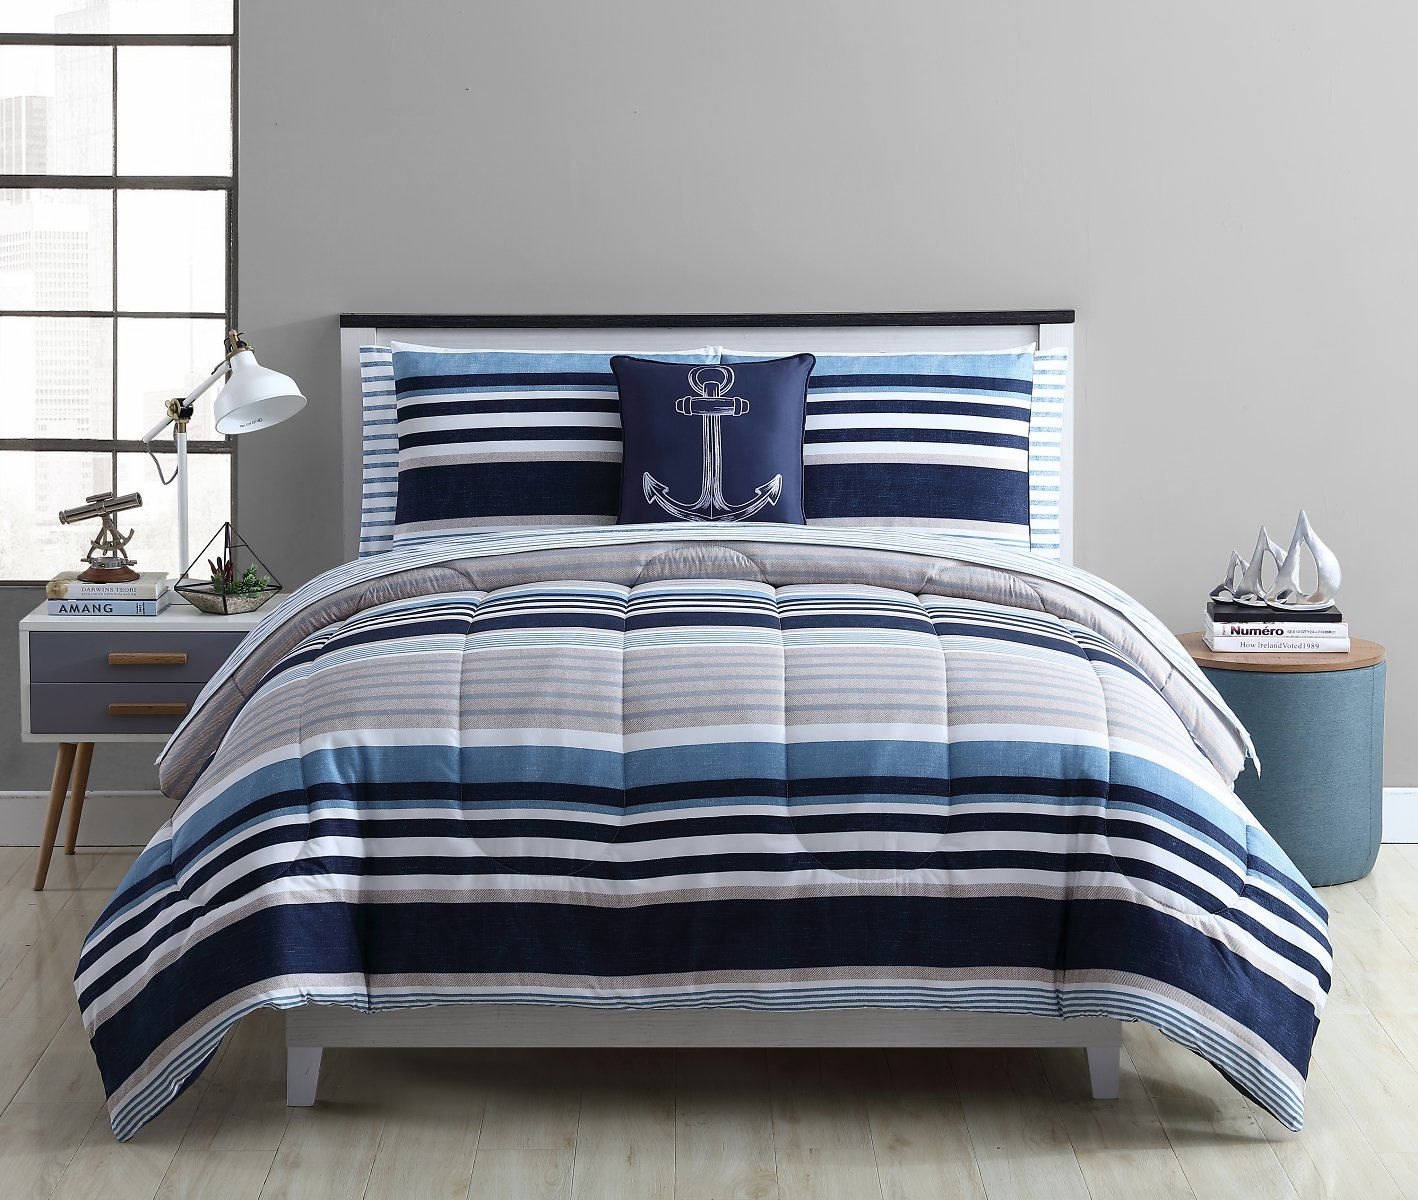 Mainstays Stripe Bed in a Bag Bedding Set